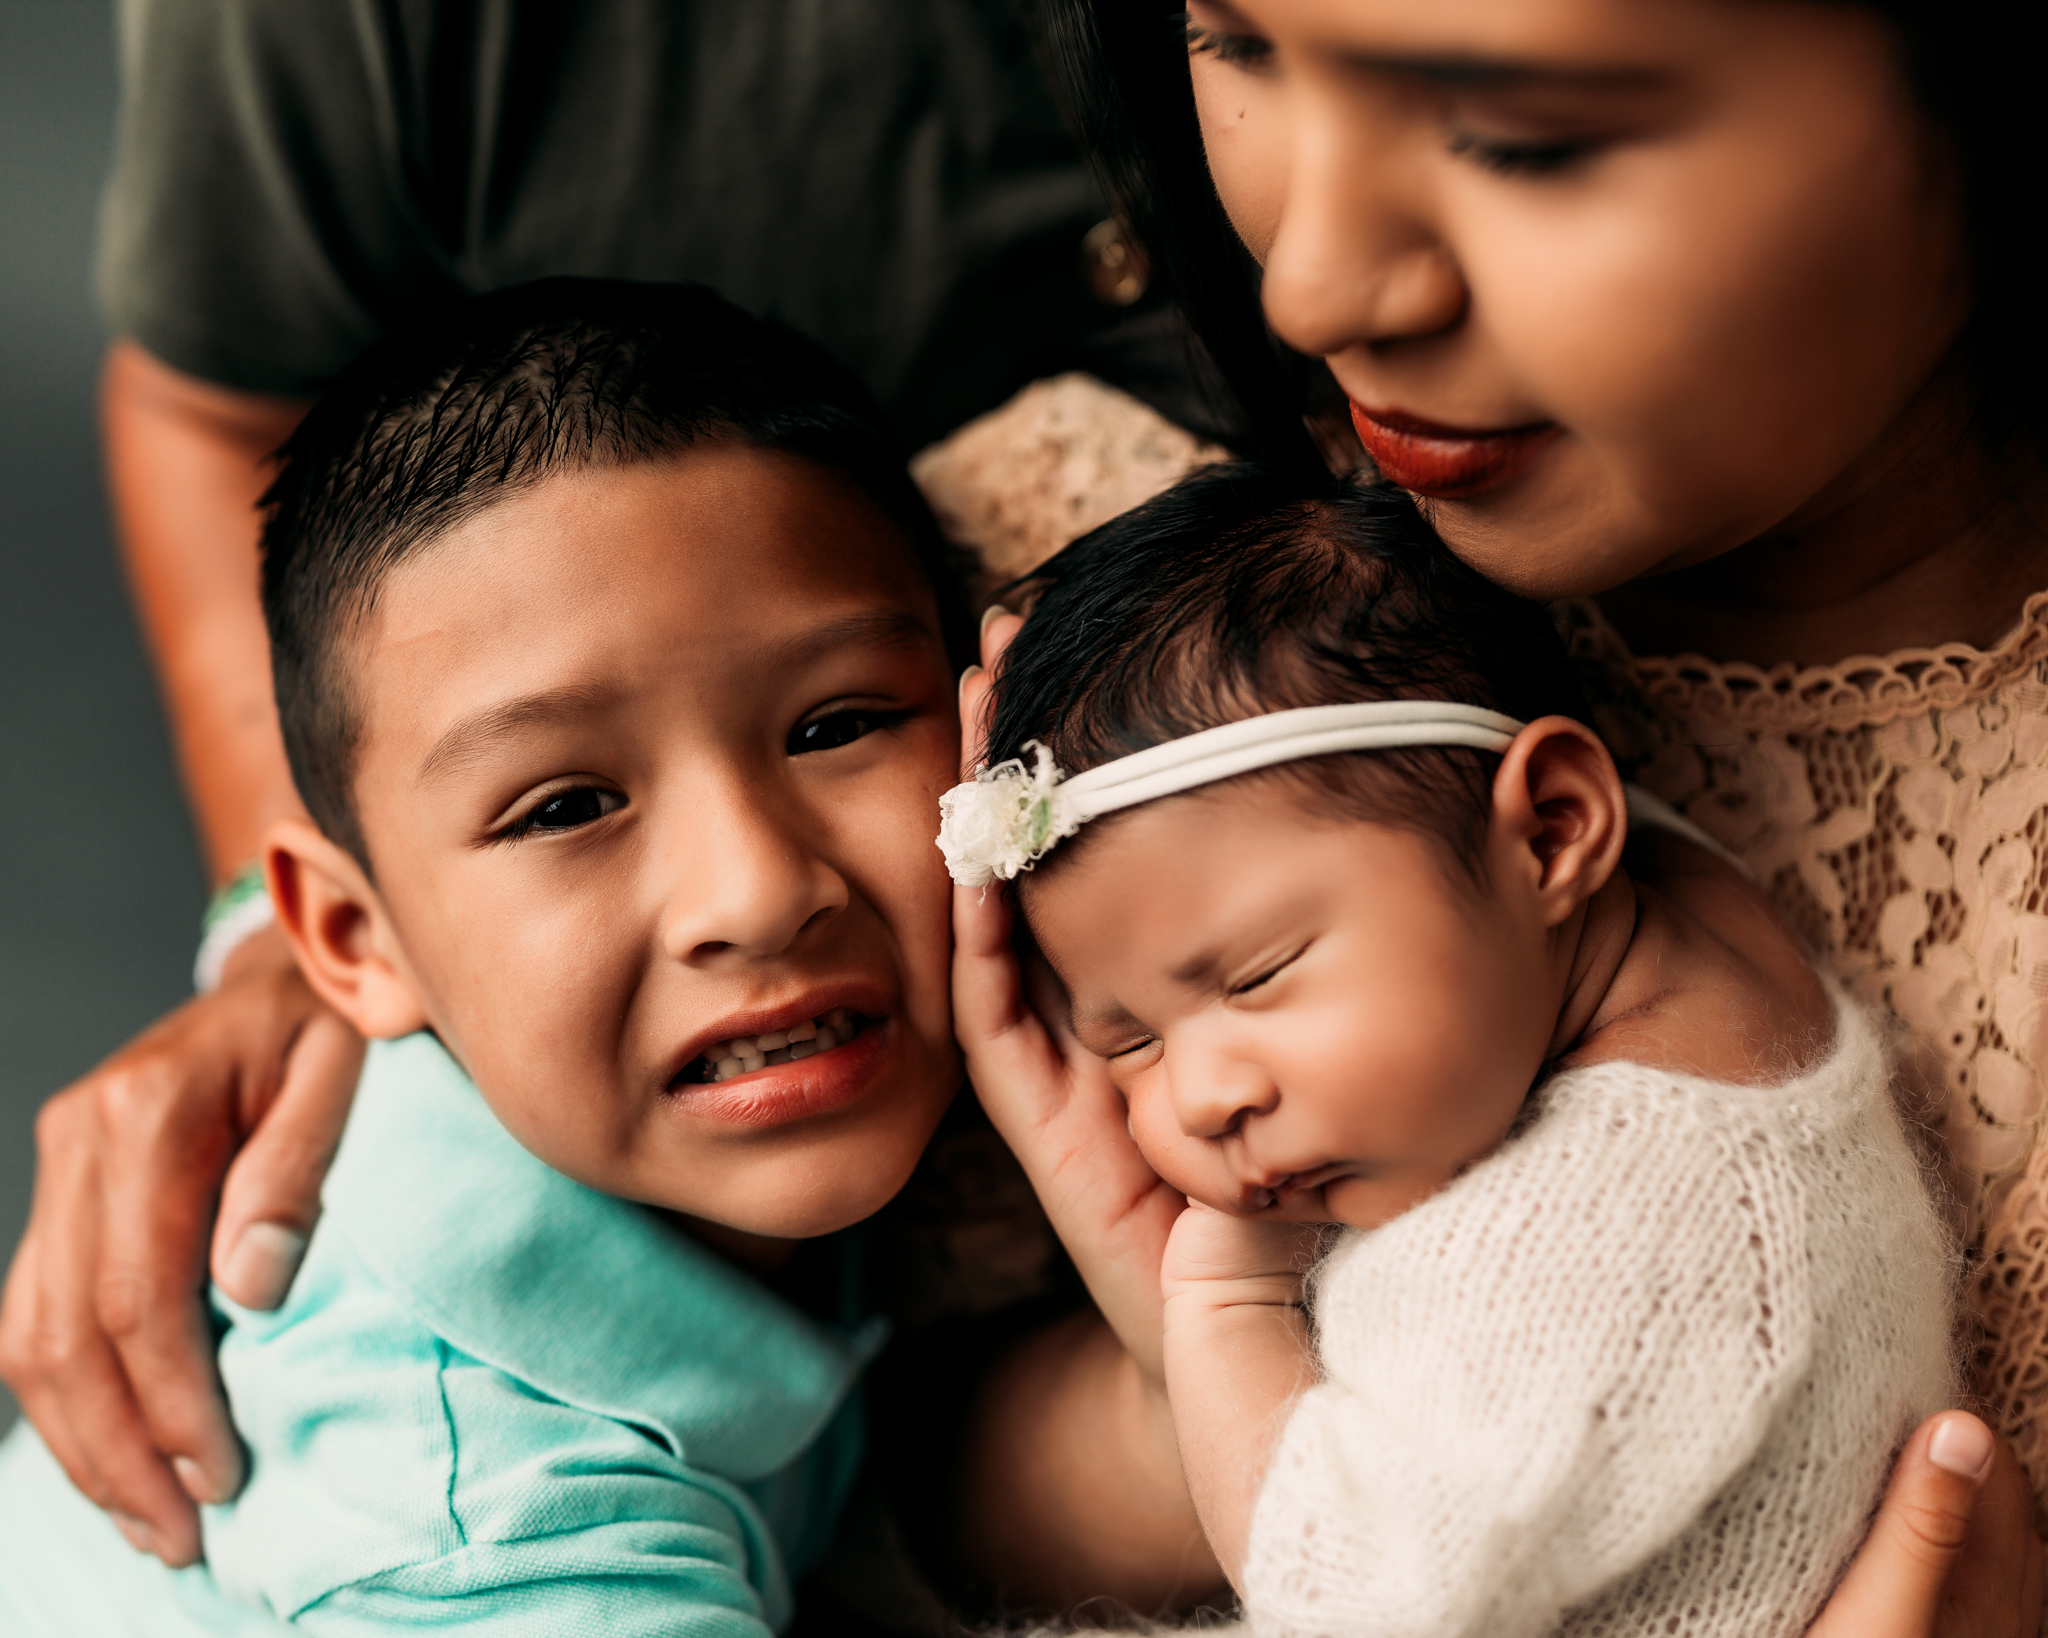 brother cuddling with baby sister in photography studio